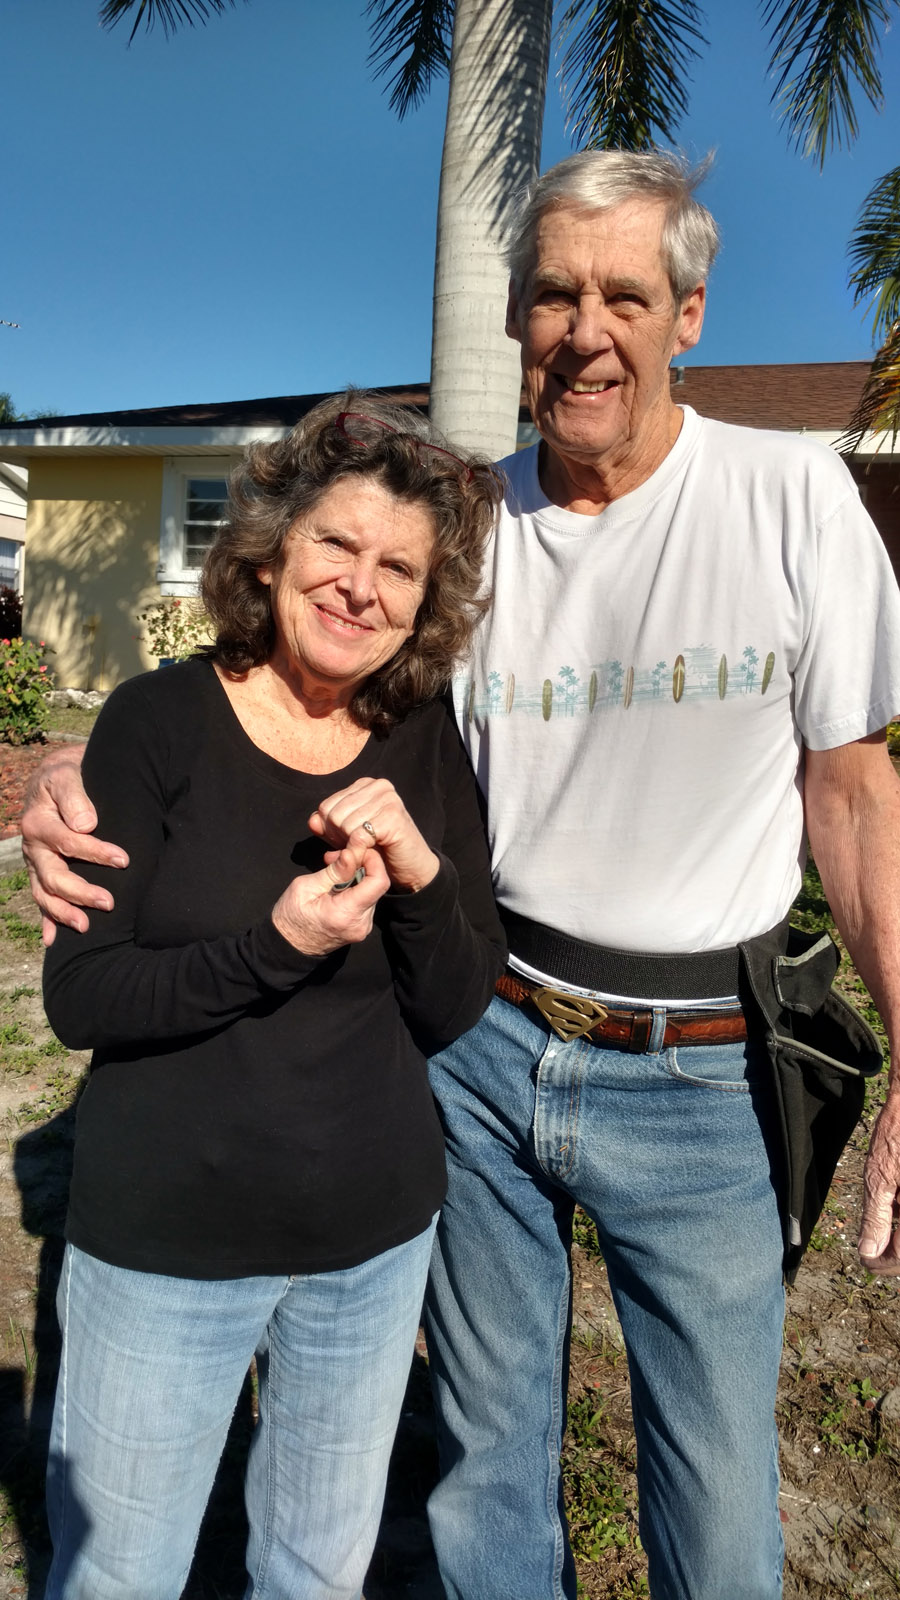 Ring Lost In Bradenton, Recovered By SRARC